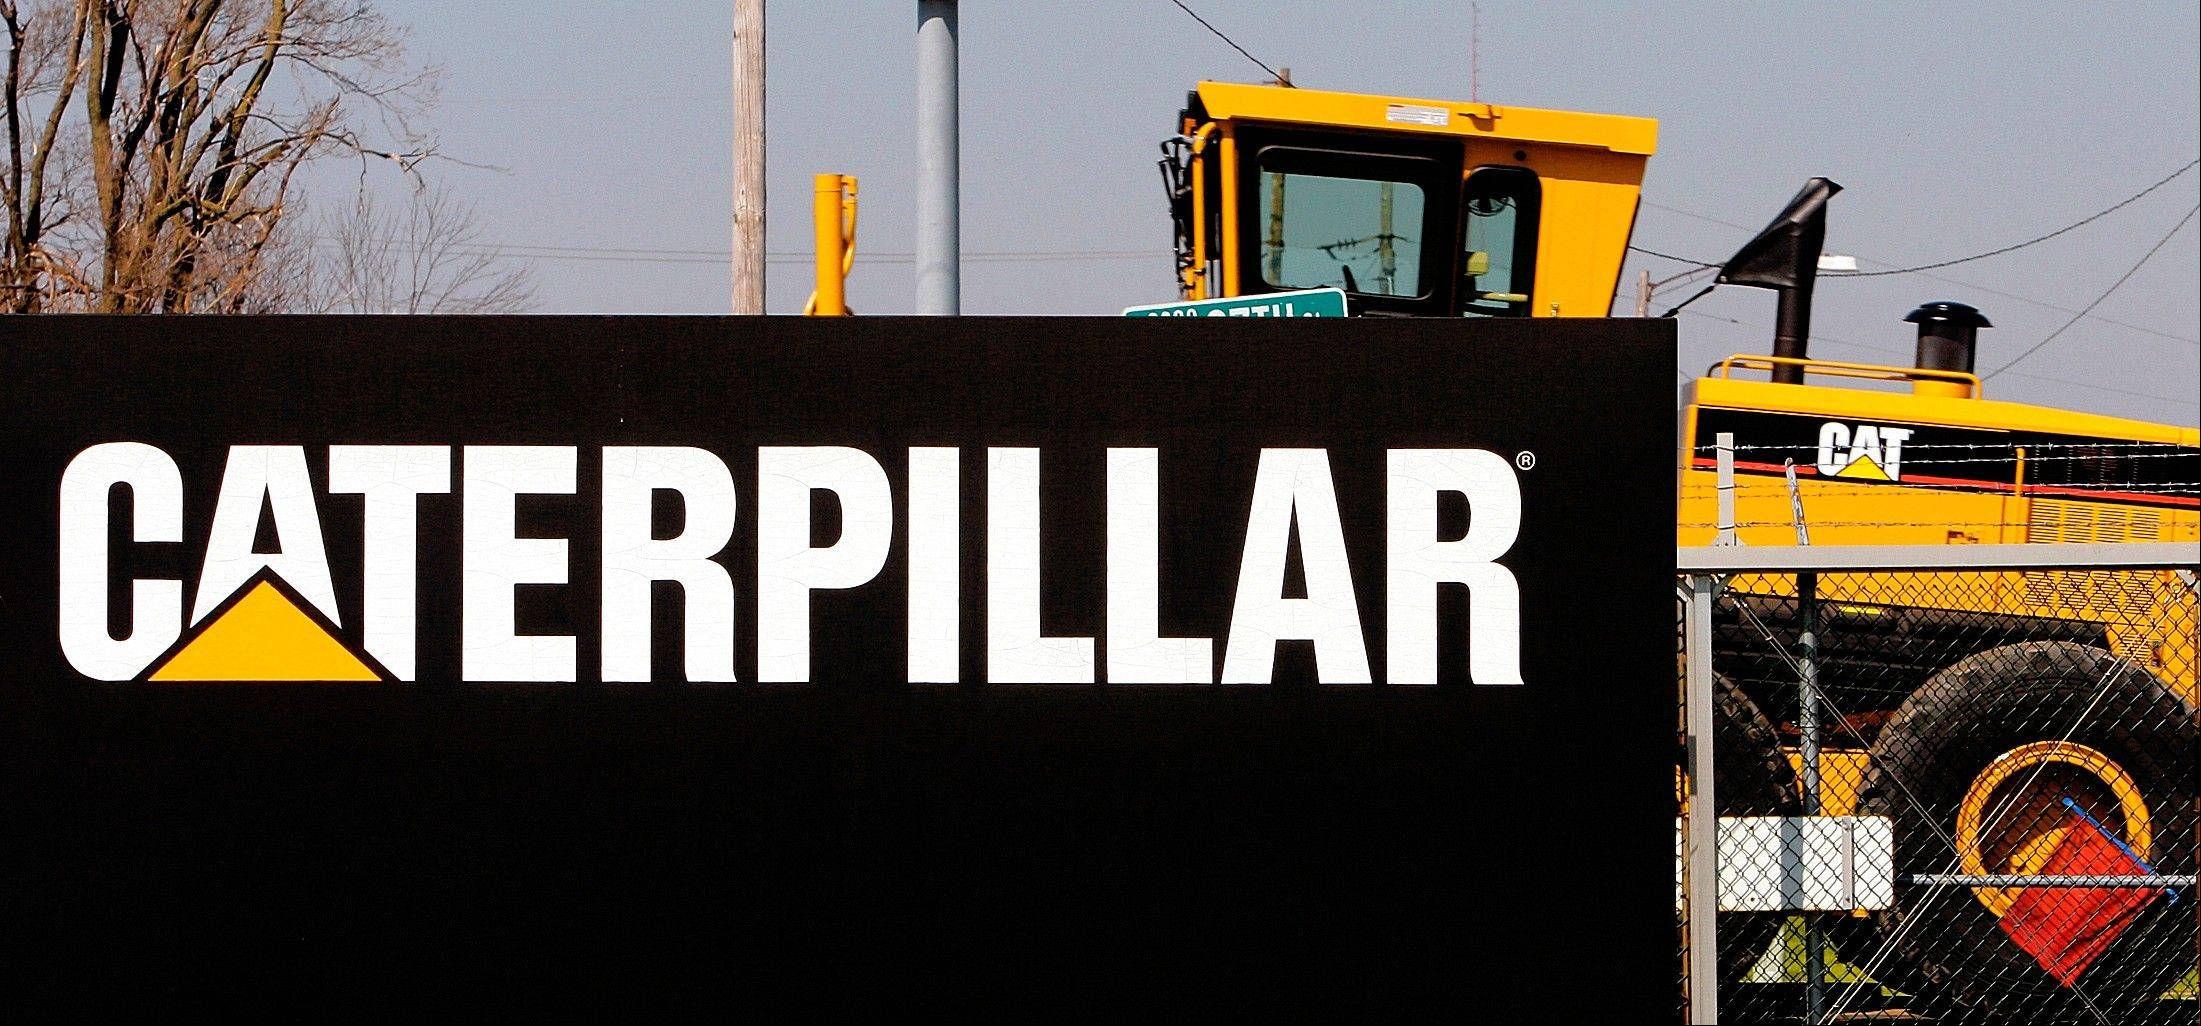 Associated Press/2007 A Caterpillar grader is trucked out of the plant in Decatur.